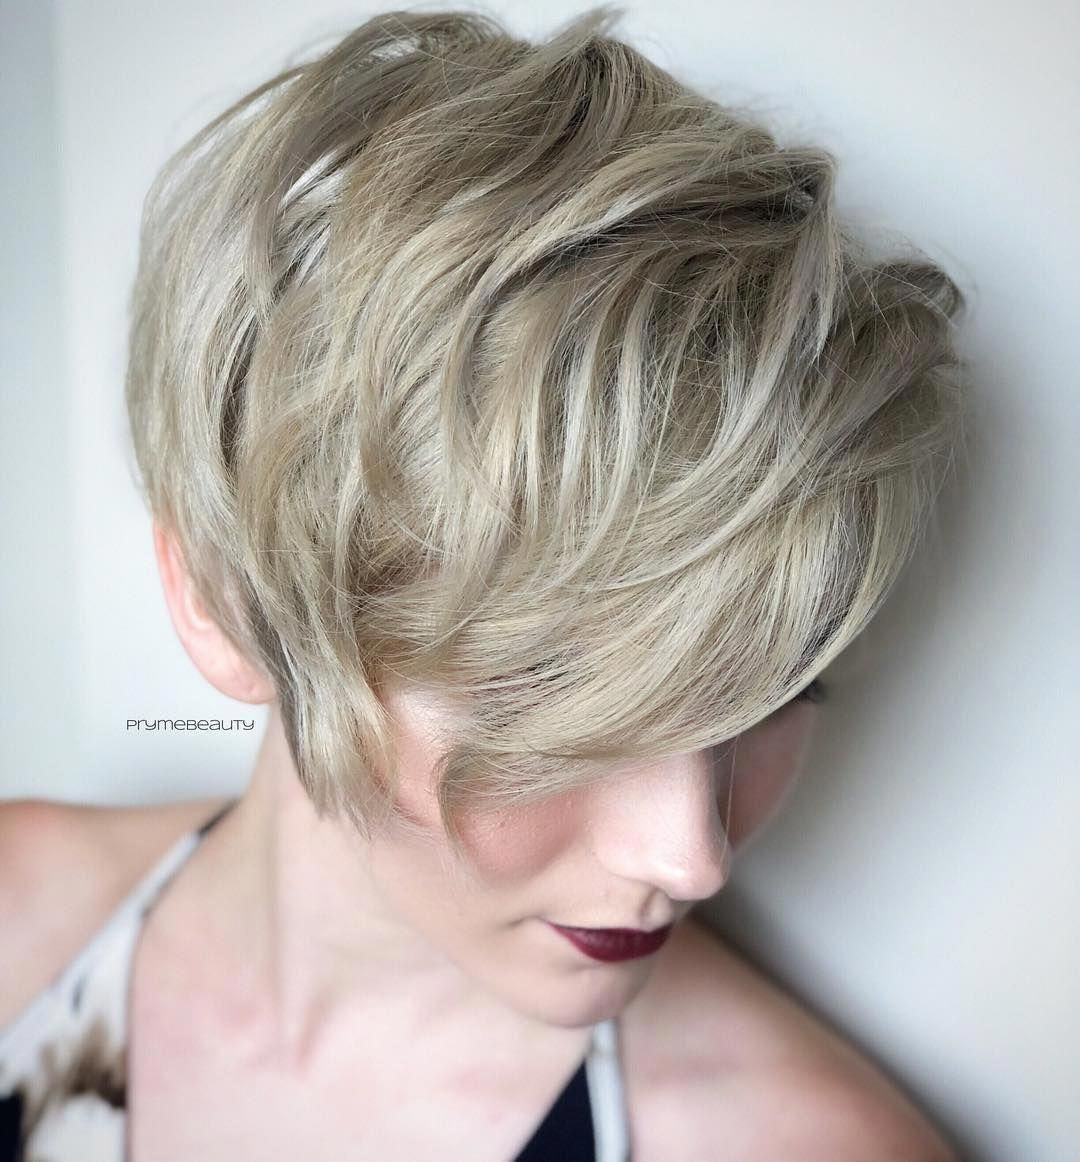 Easy short layered hairstyles stylish short haircut for women